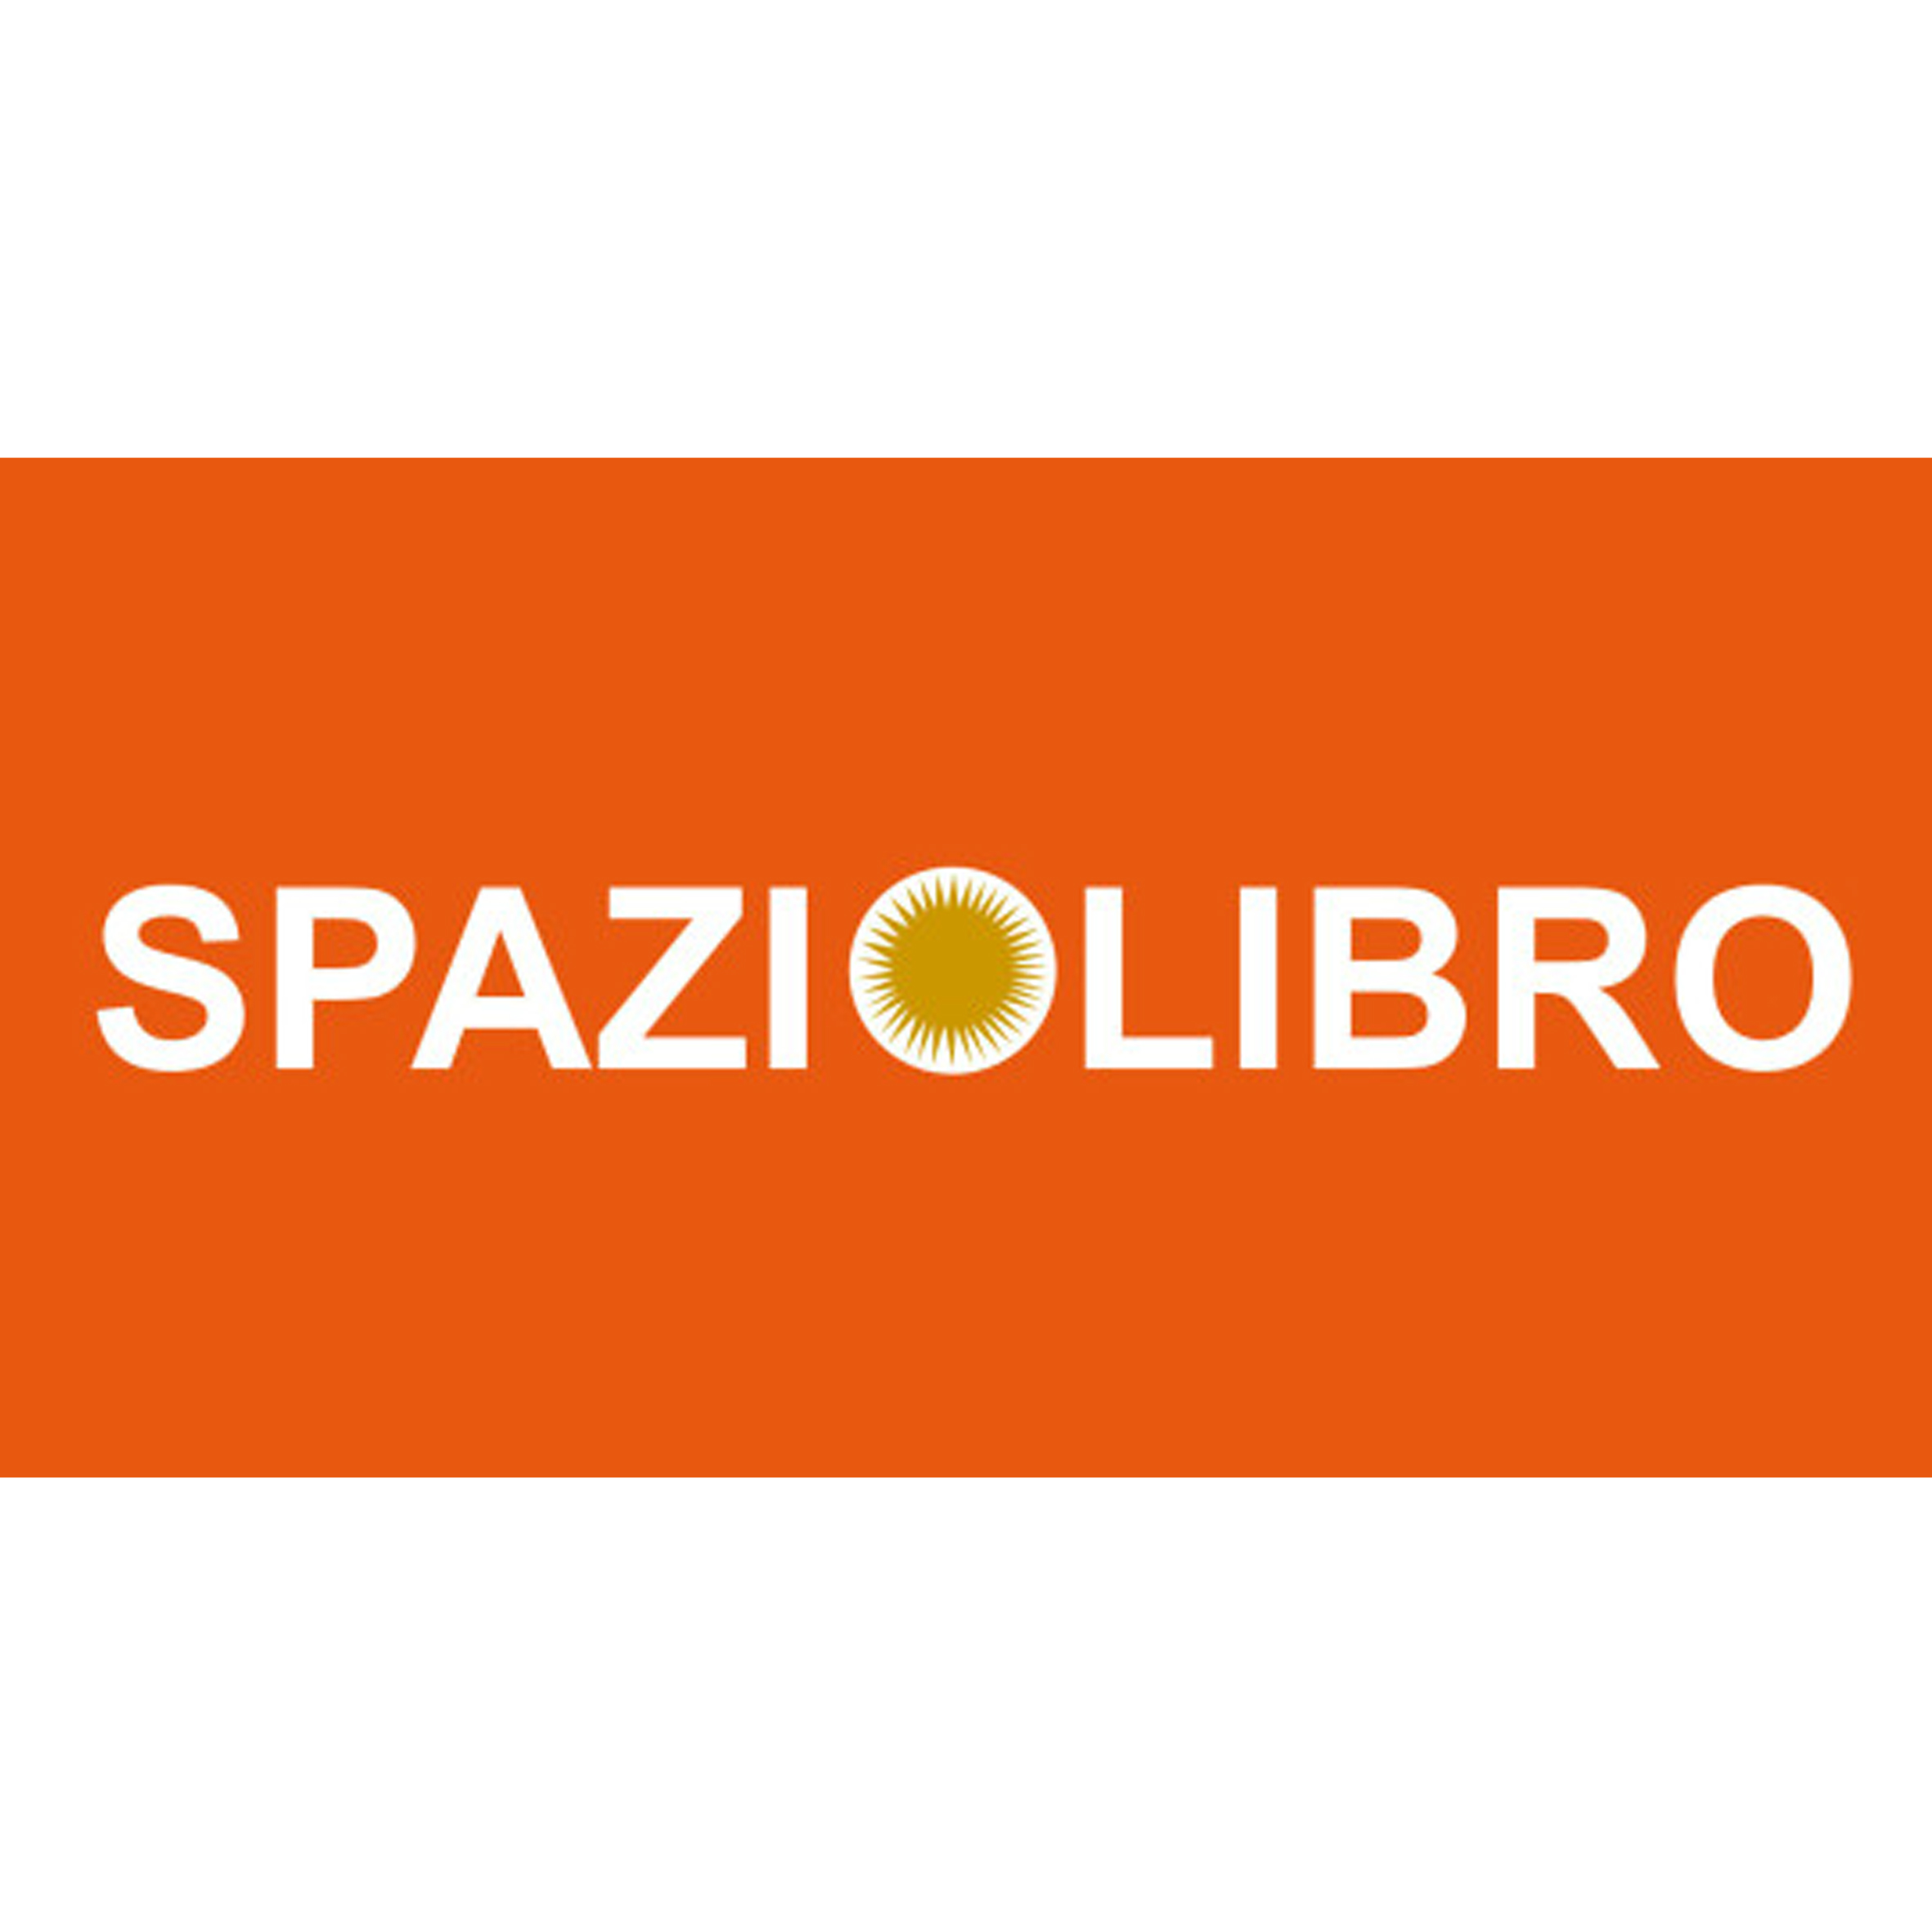 spazio_libro_larixpress_new